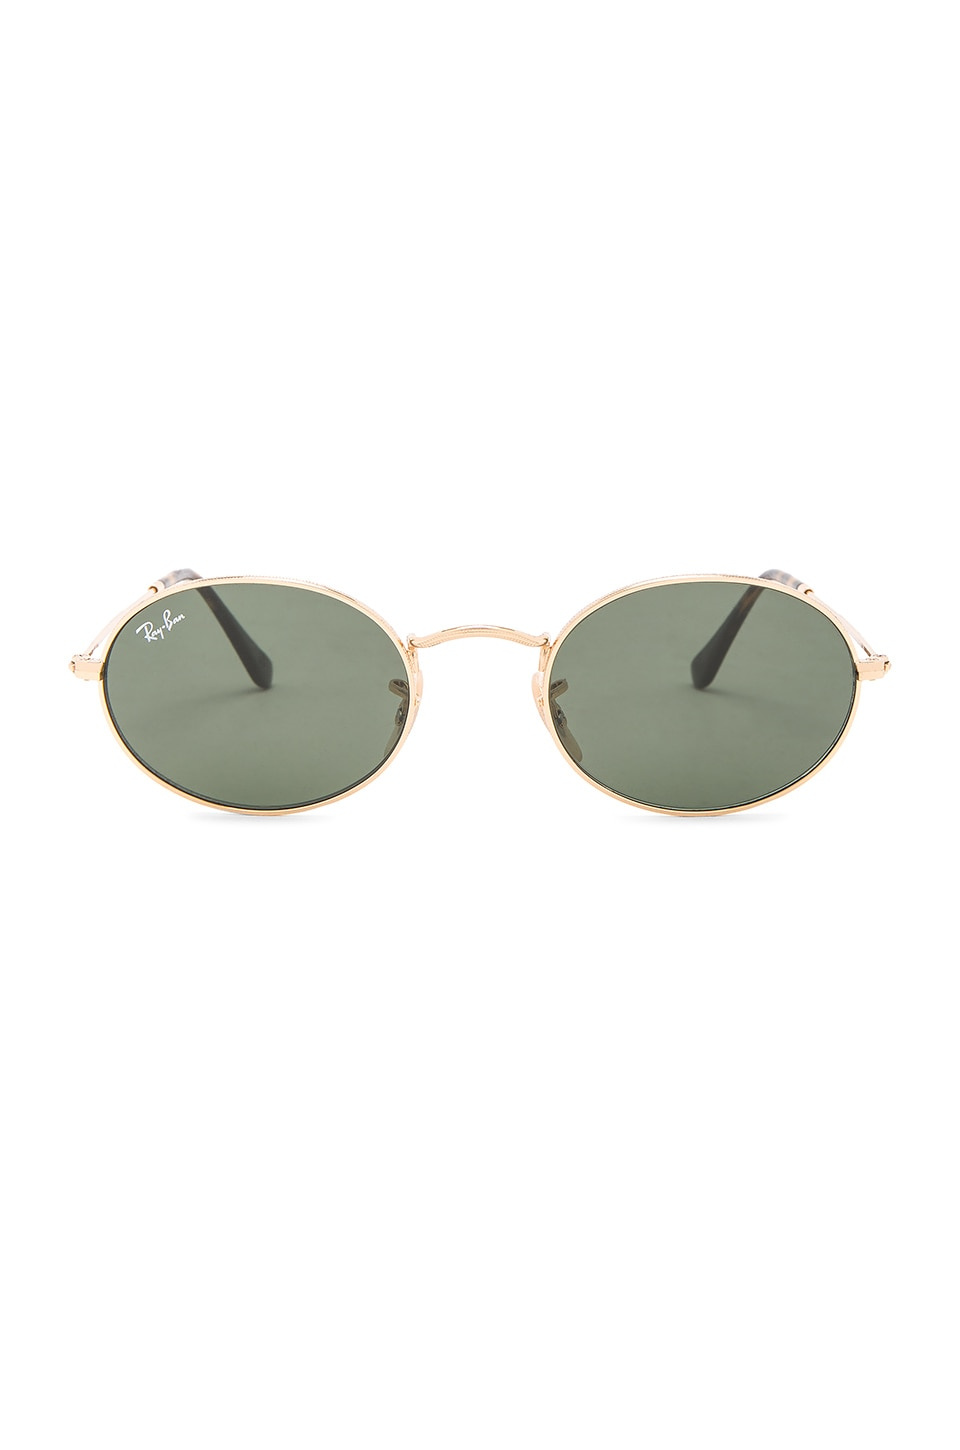 Ray-Ban Oval Flat in Gold & Green Classic